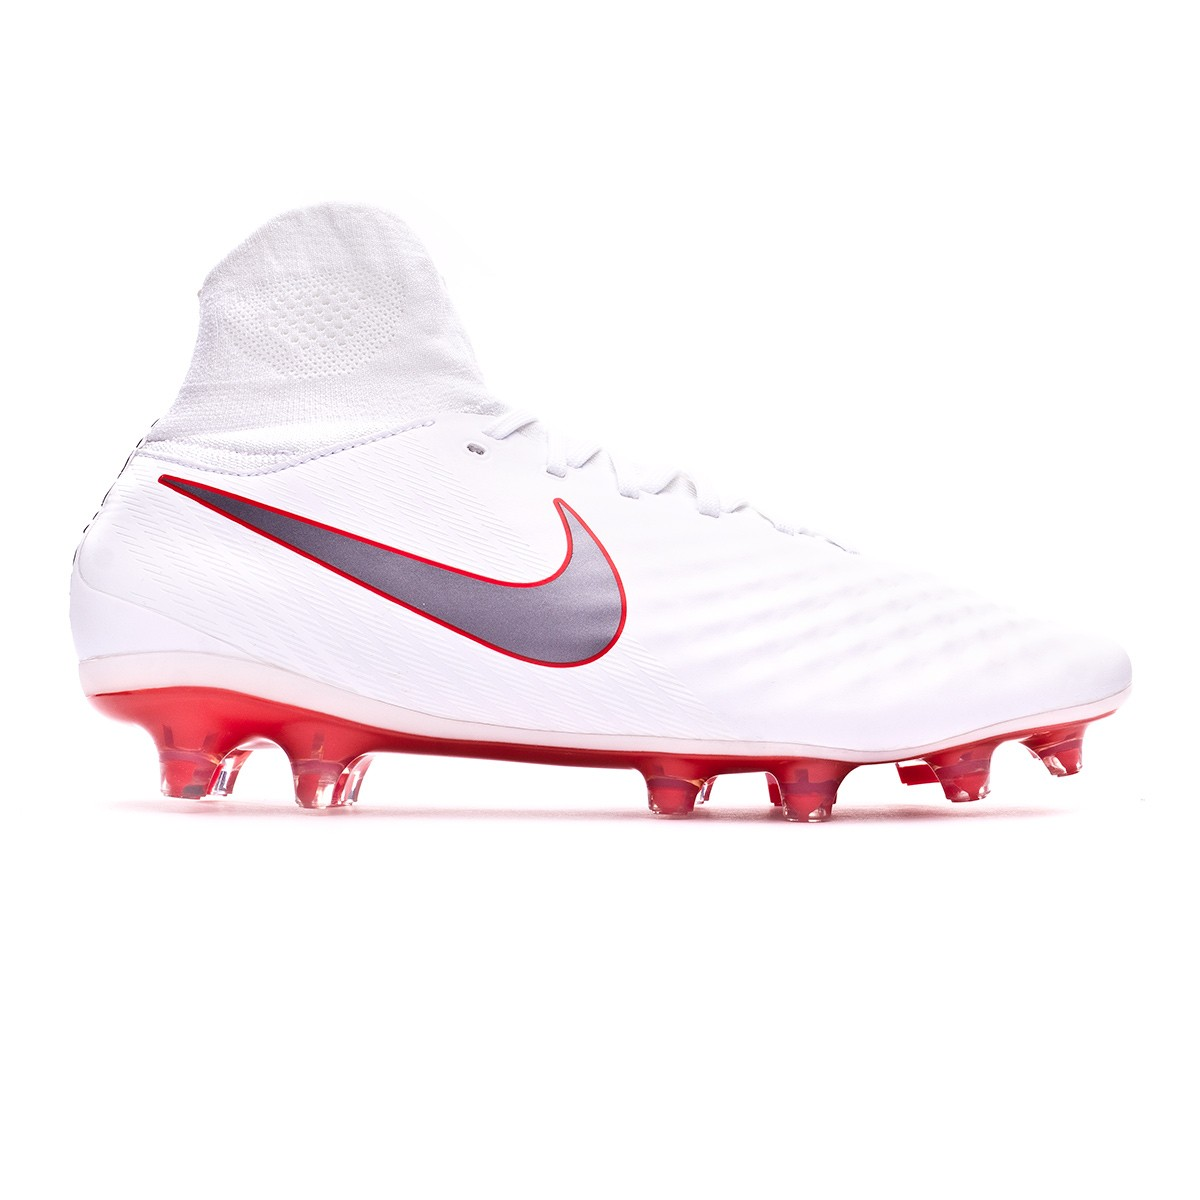 50cdcaad1b6b Football Boots Nike Magista Obra II Pro DF FG White-Metallic cool grey-Light  crimson - Football store Fútbol Emotion